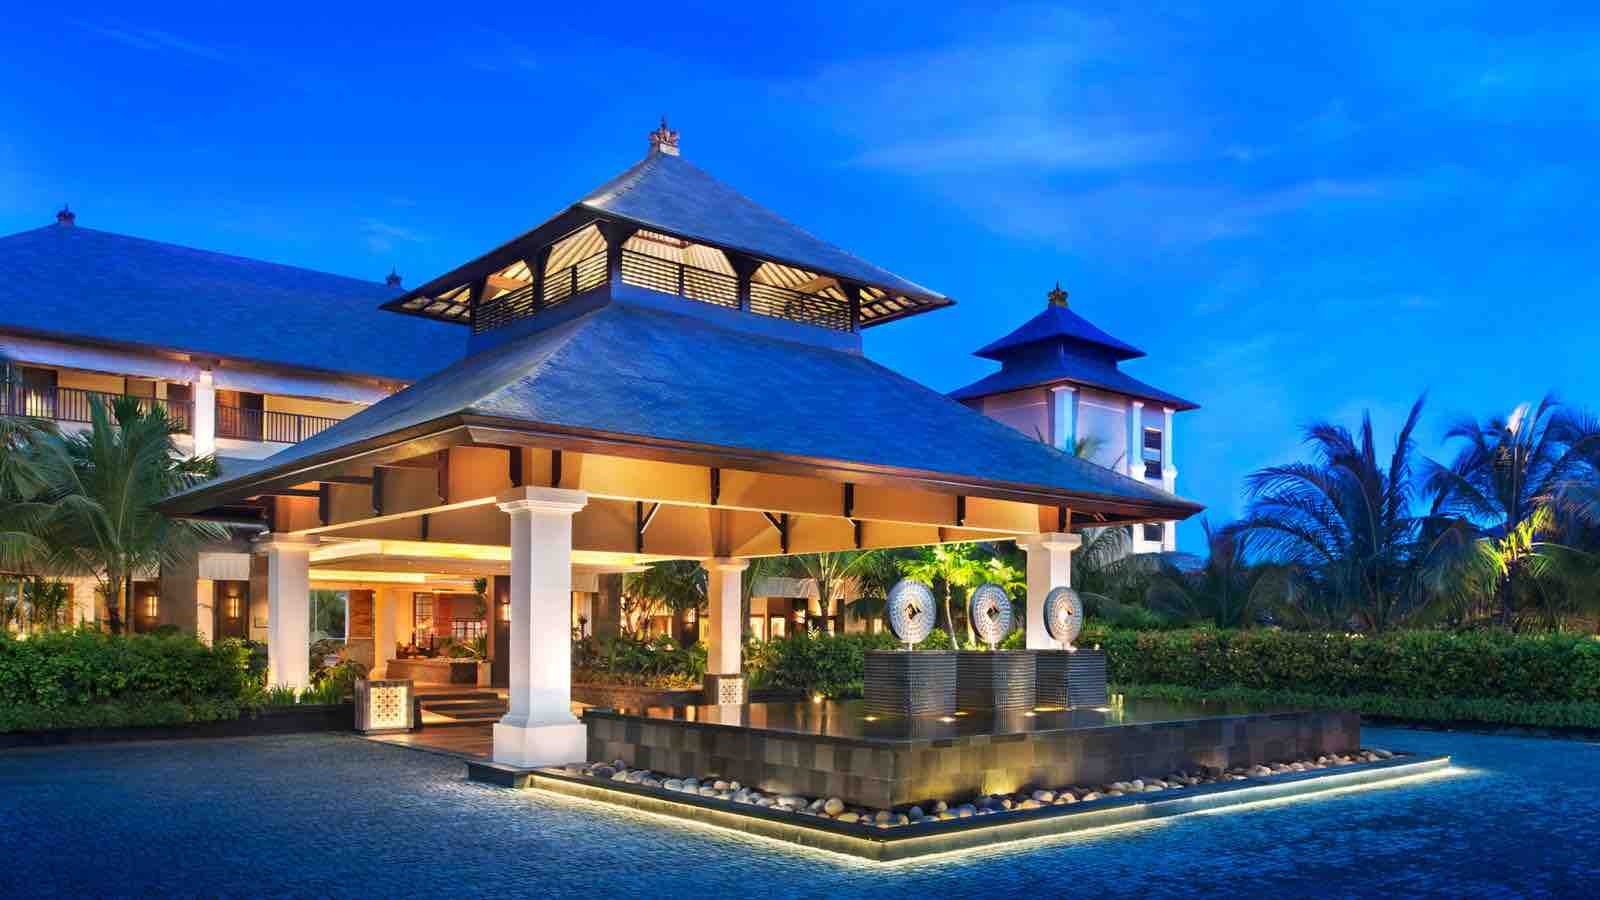 Top 25 hotels in indonesia easy planet travel for Bali indonesia hotels 5 star